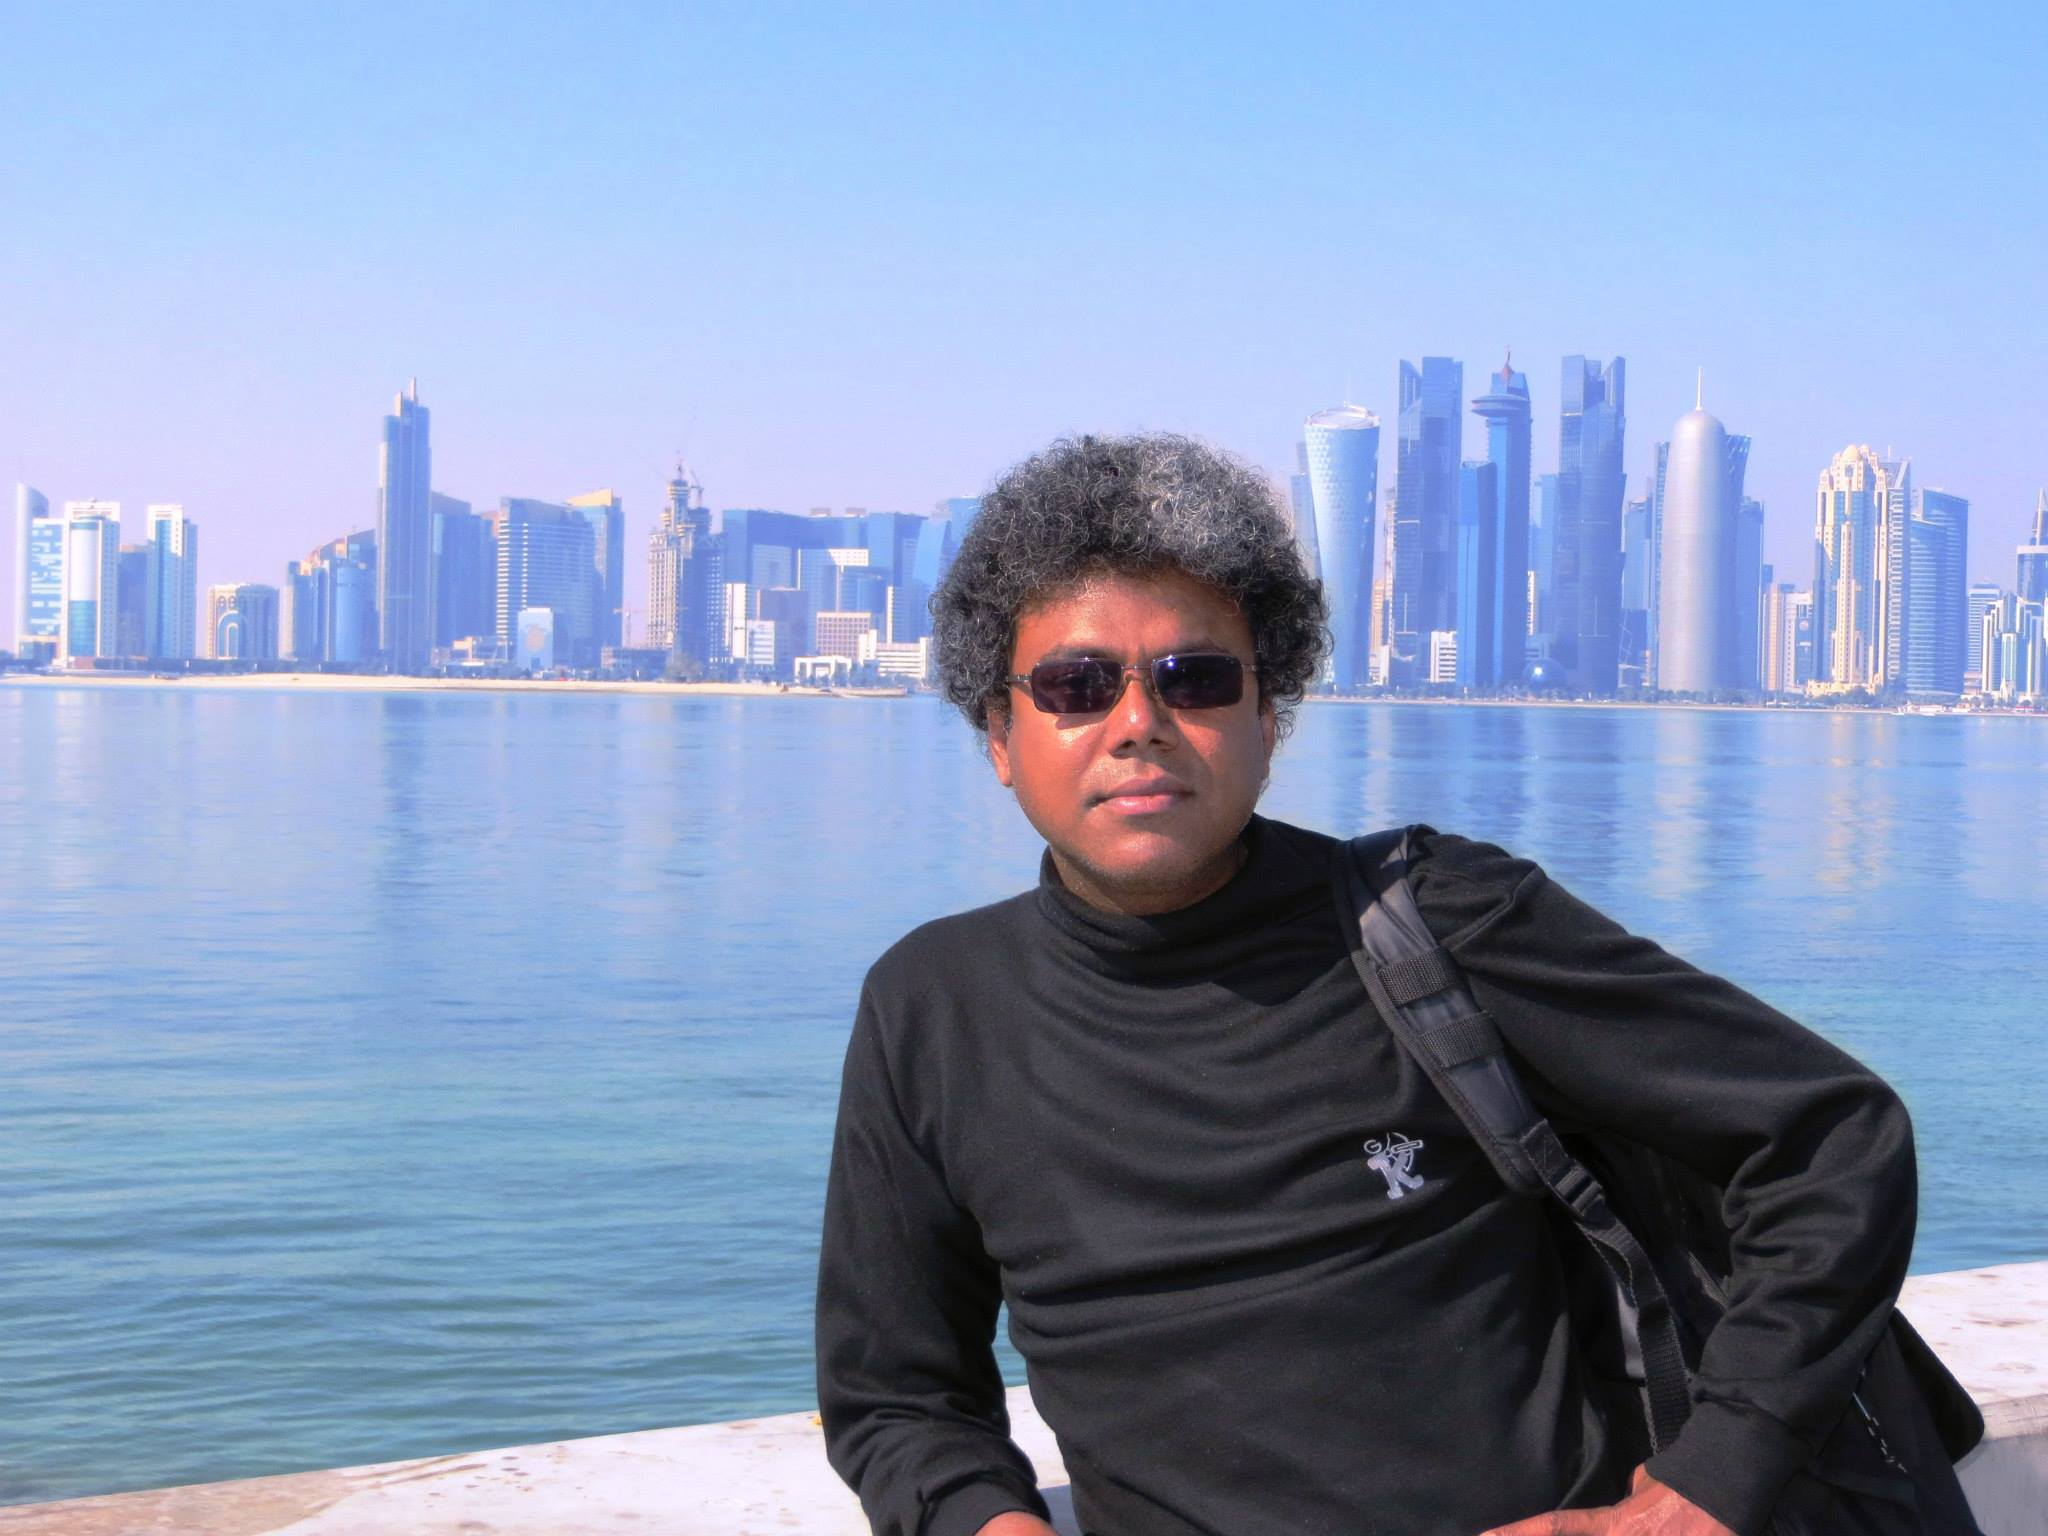 Rudrasankar's poetry is a sophisticated combination of self